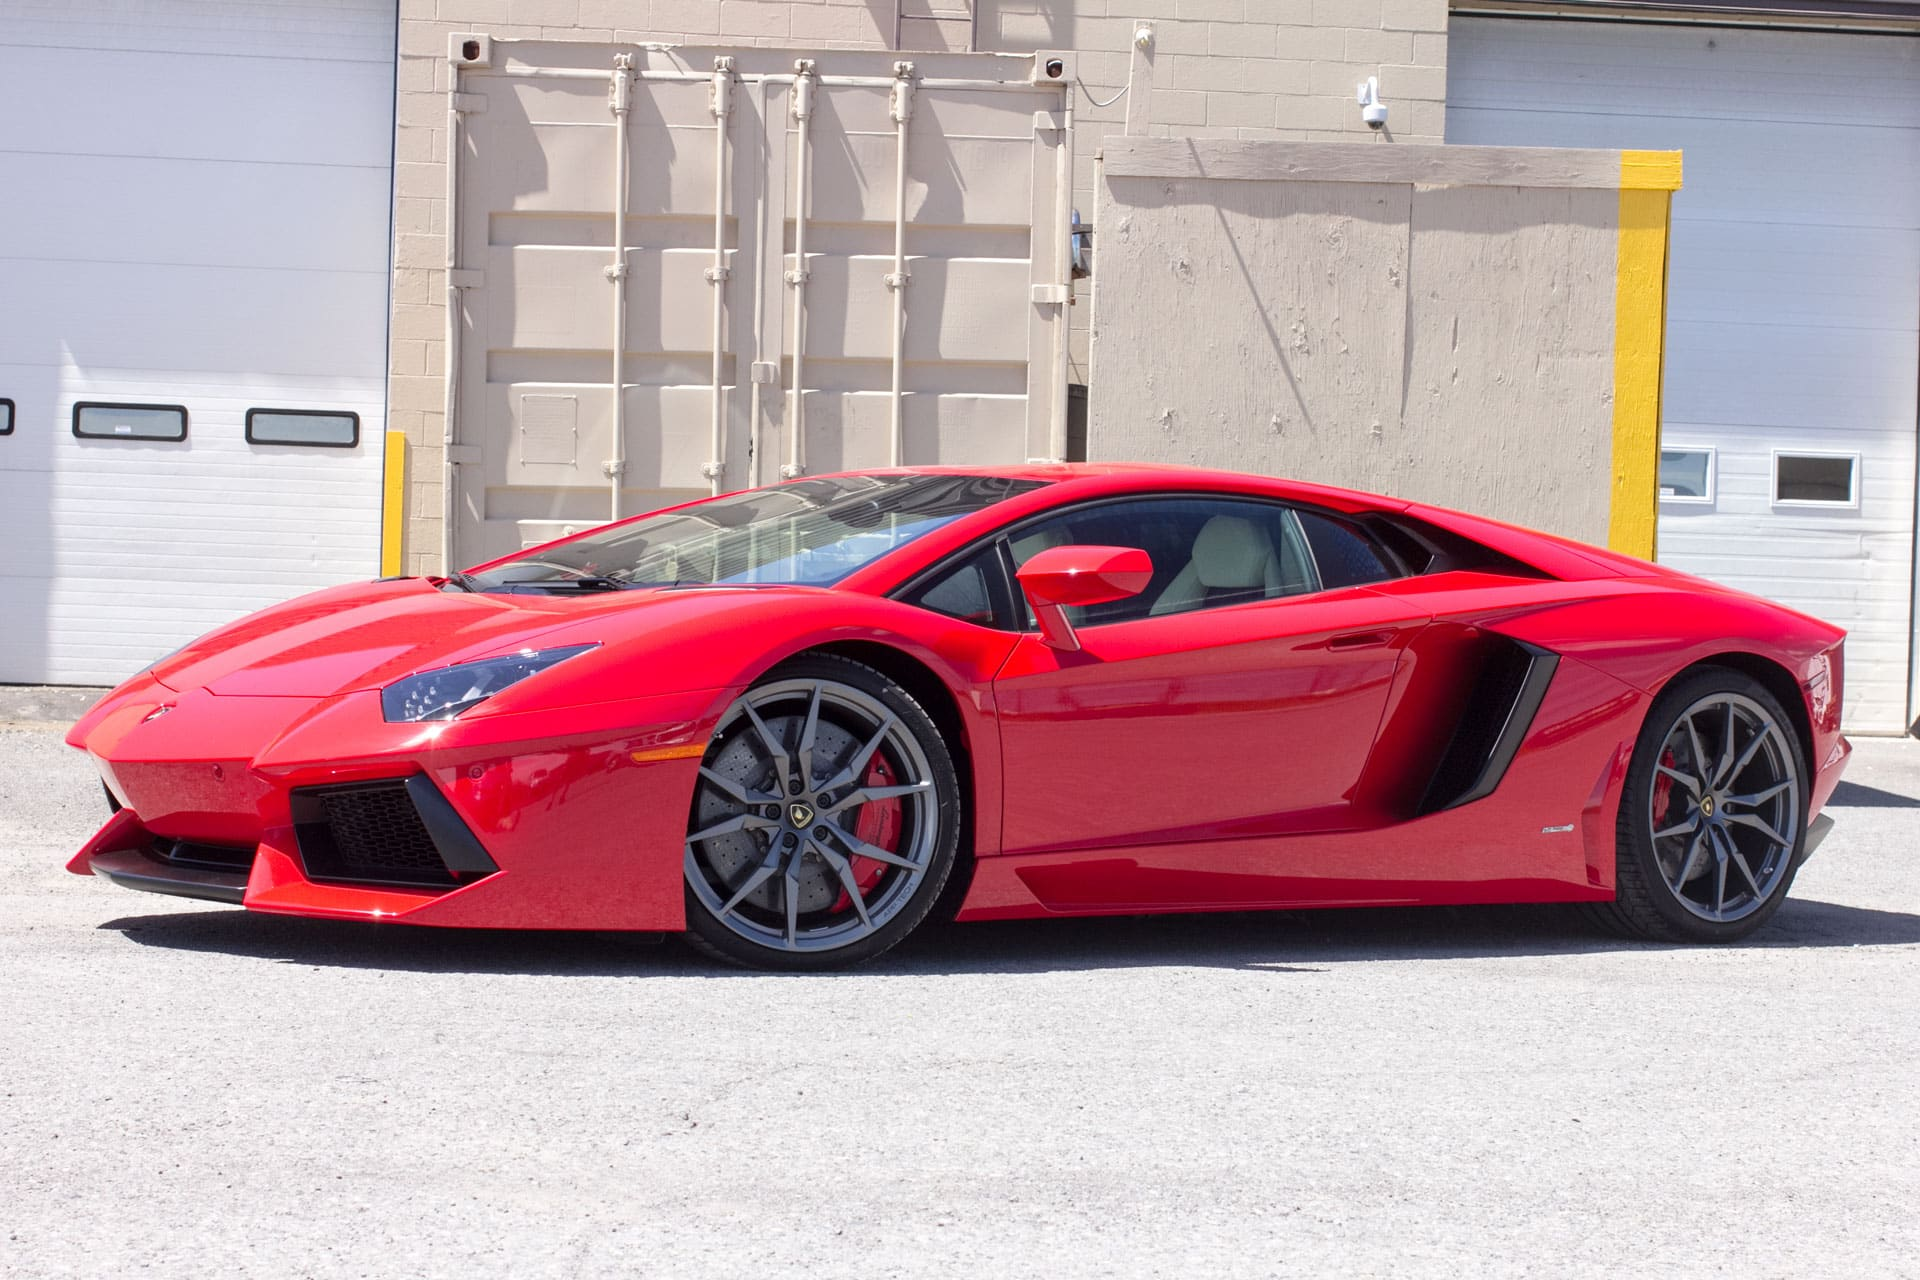 Lamborghini Aventador Xpel Paint Protection - Ottawa - Goldwing Autocare